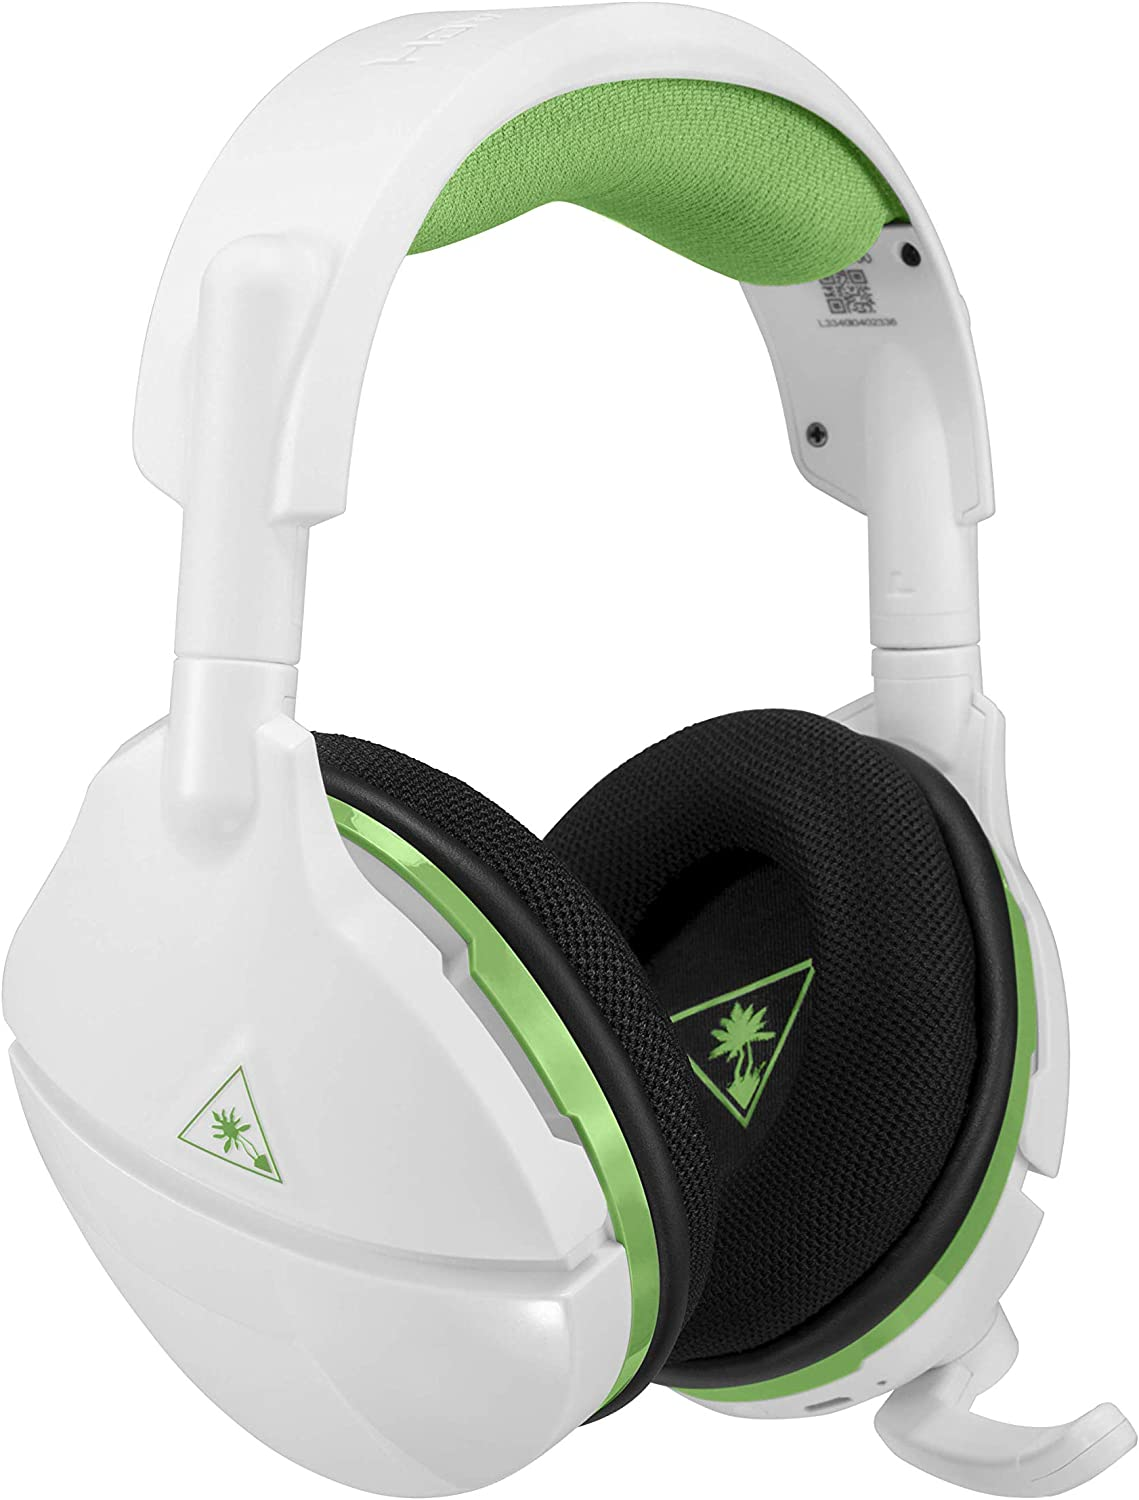 Turtle Beach Stealth 600 White Wireless Surround Sound Gaming Headset for Xbox One – Xbox One